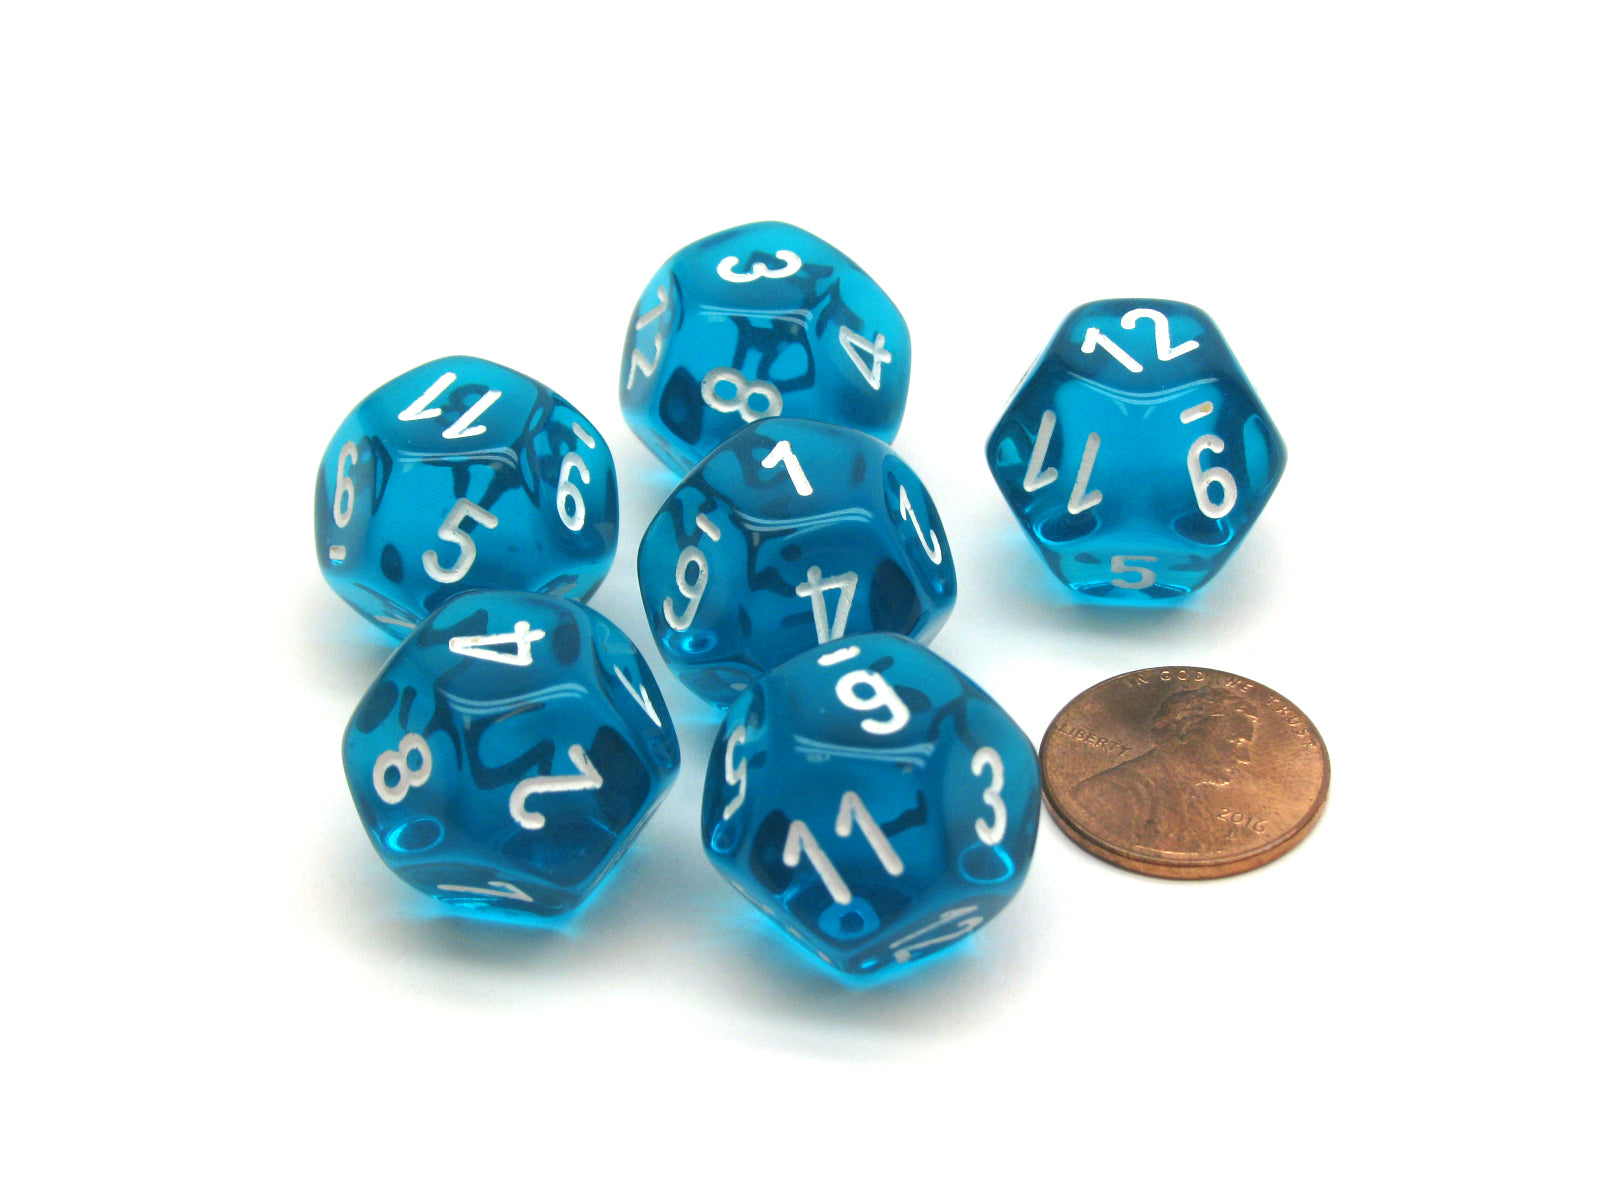 Translucent 18mm 12 Sided D12 Chessex Dice, 6 Pieces -  Teal with White